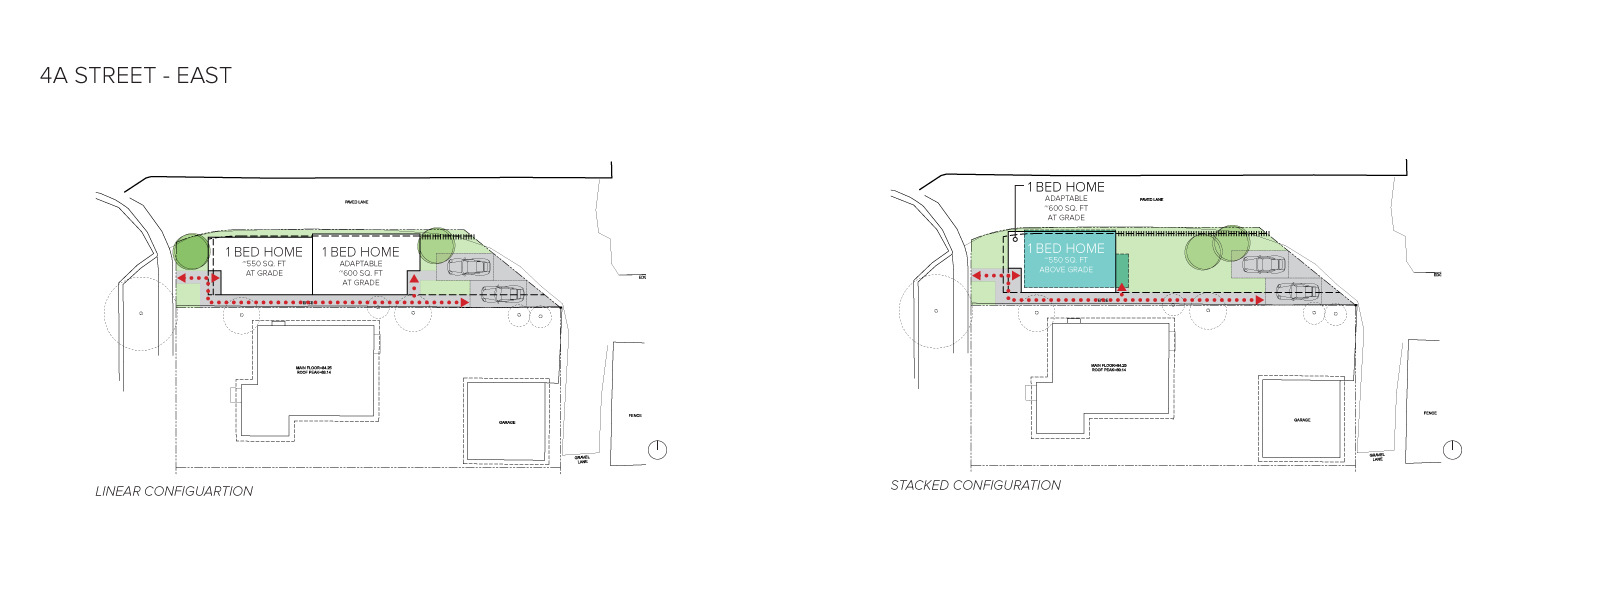 An image of the home configurations on the east side of 4A Street.